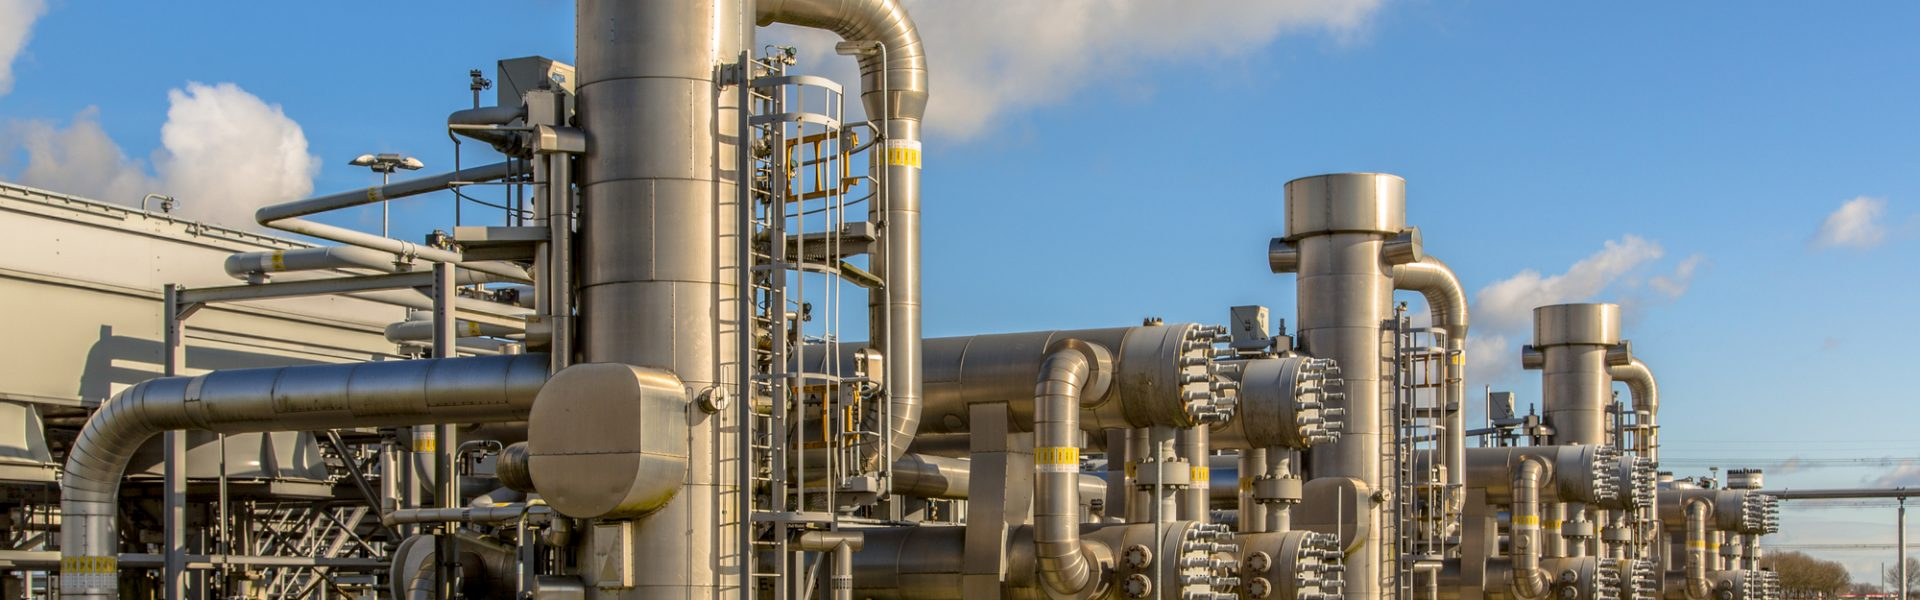 Refinery units on Dutch Natural gas field processing site